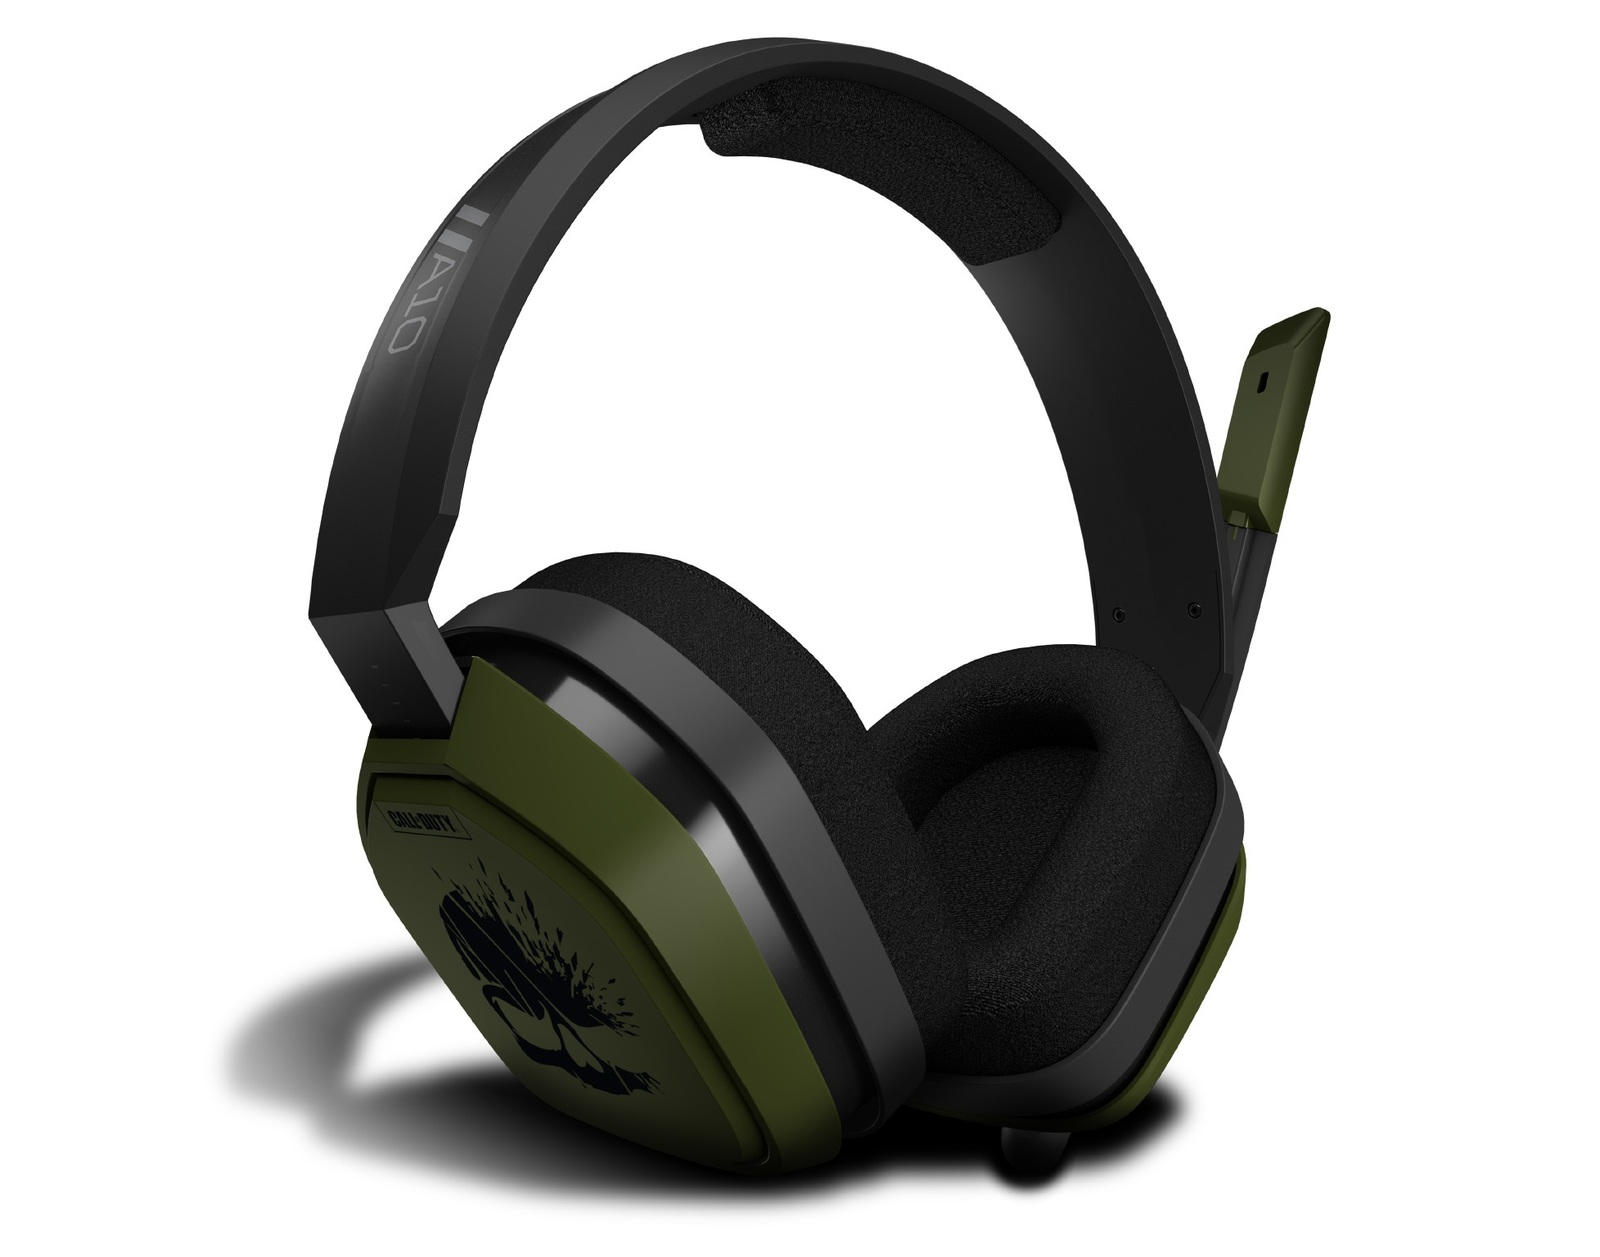 Astro A10 Wired Gaming Headset - Call of Duty (PS4, Xbox One, PC) for PS4 image